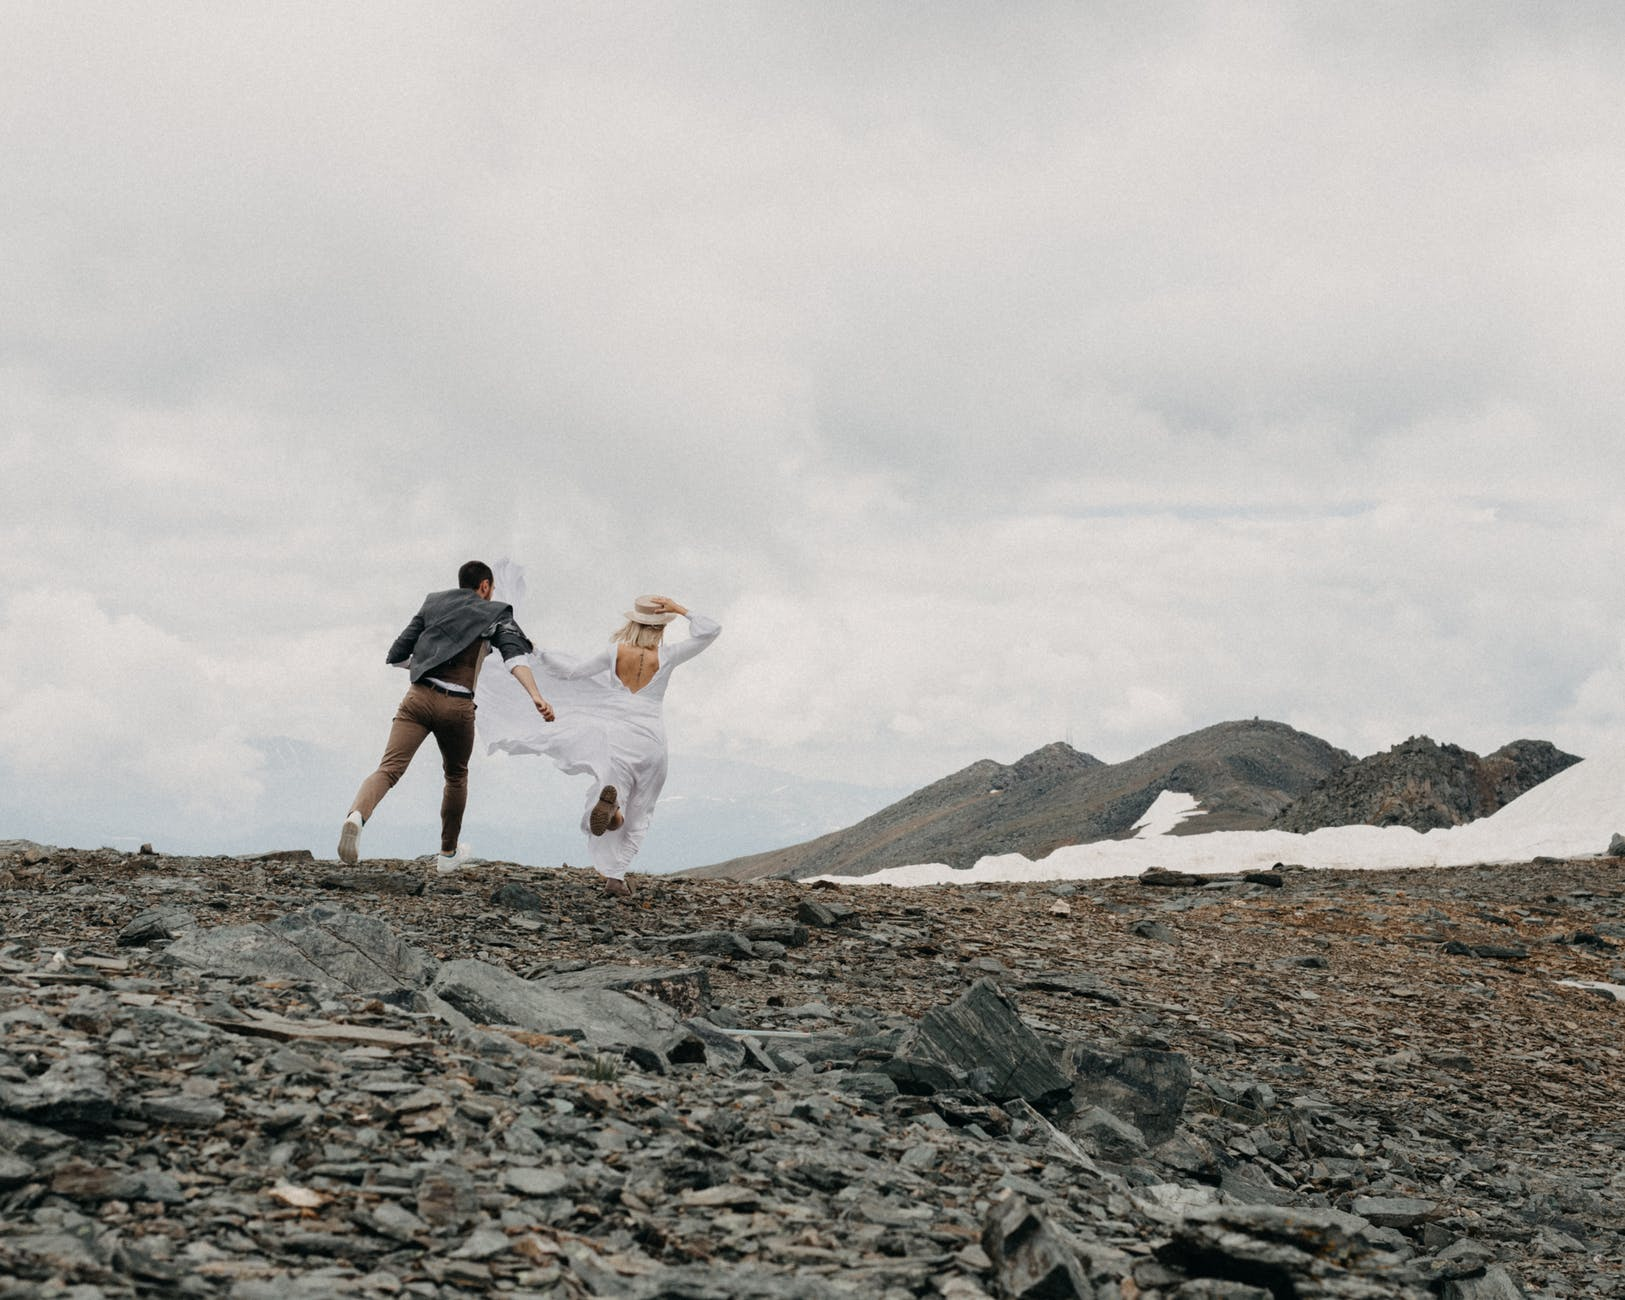 faceless newlywed couple running on mount under cloudy sky